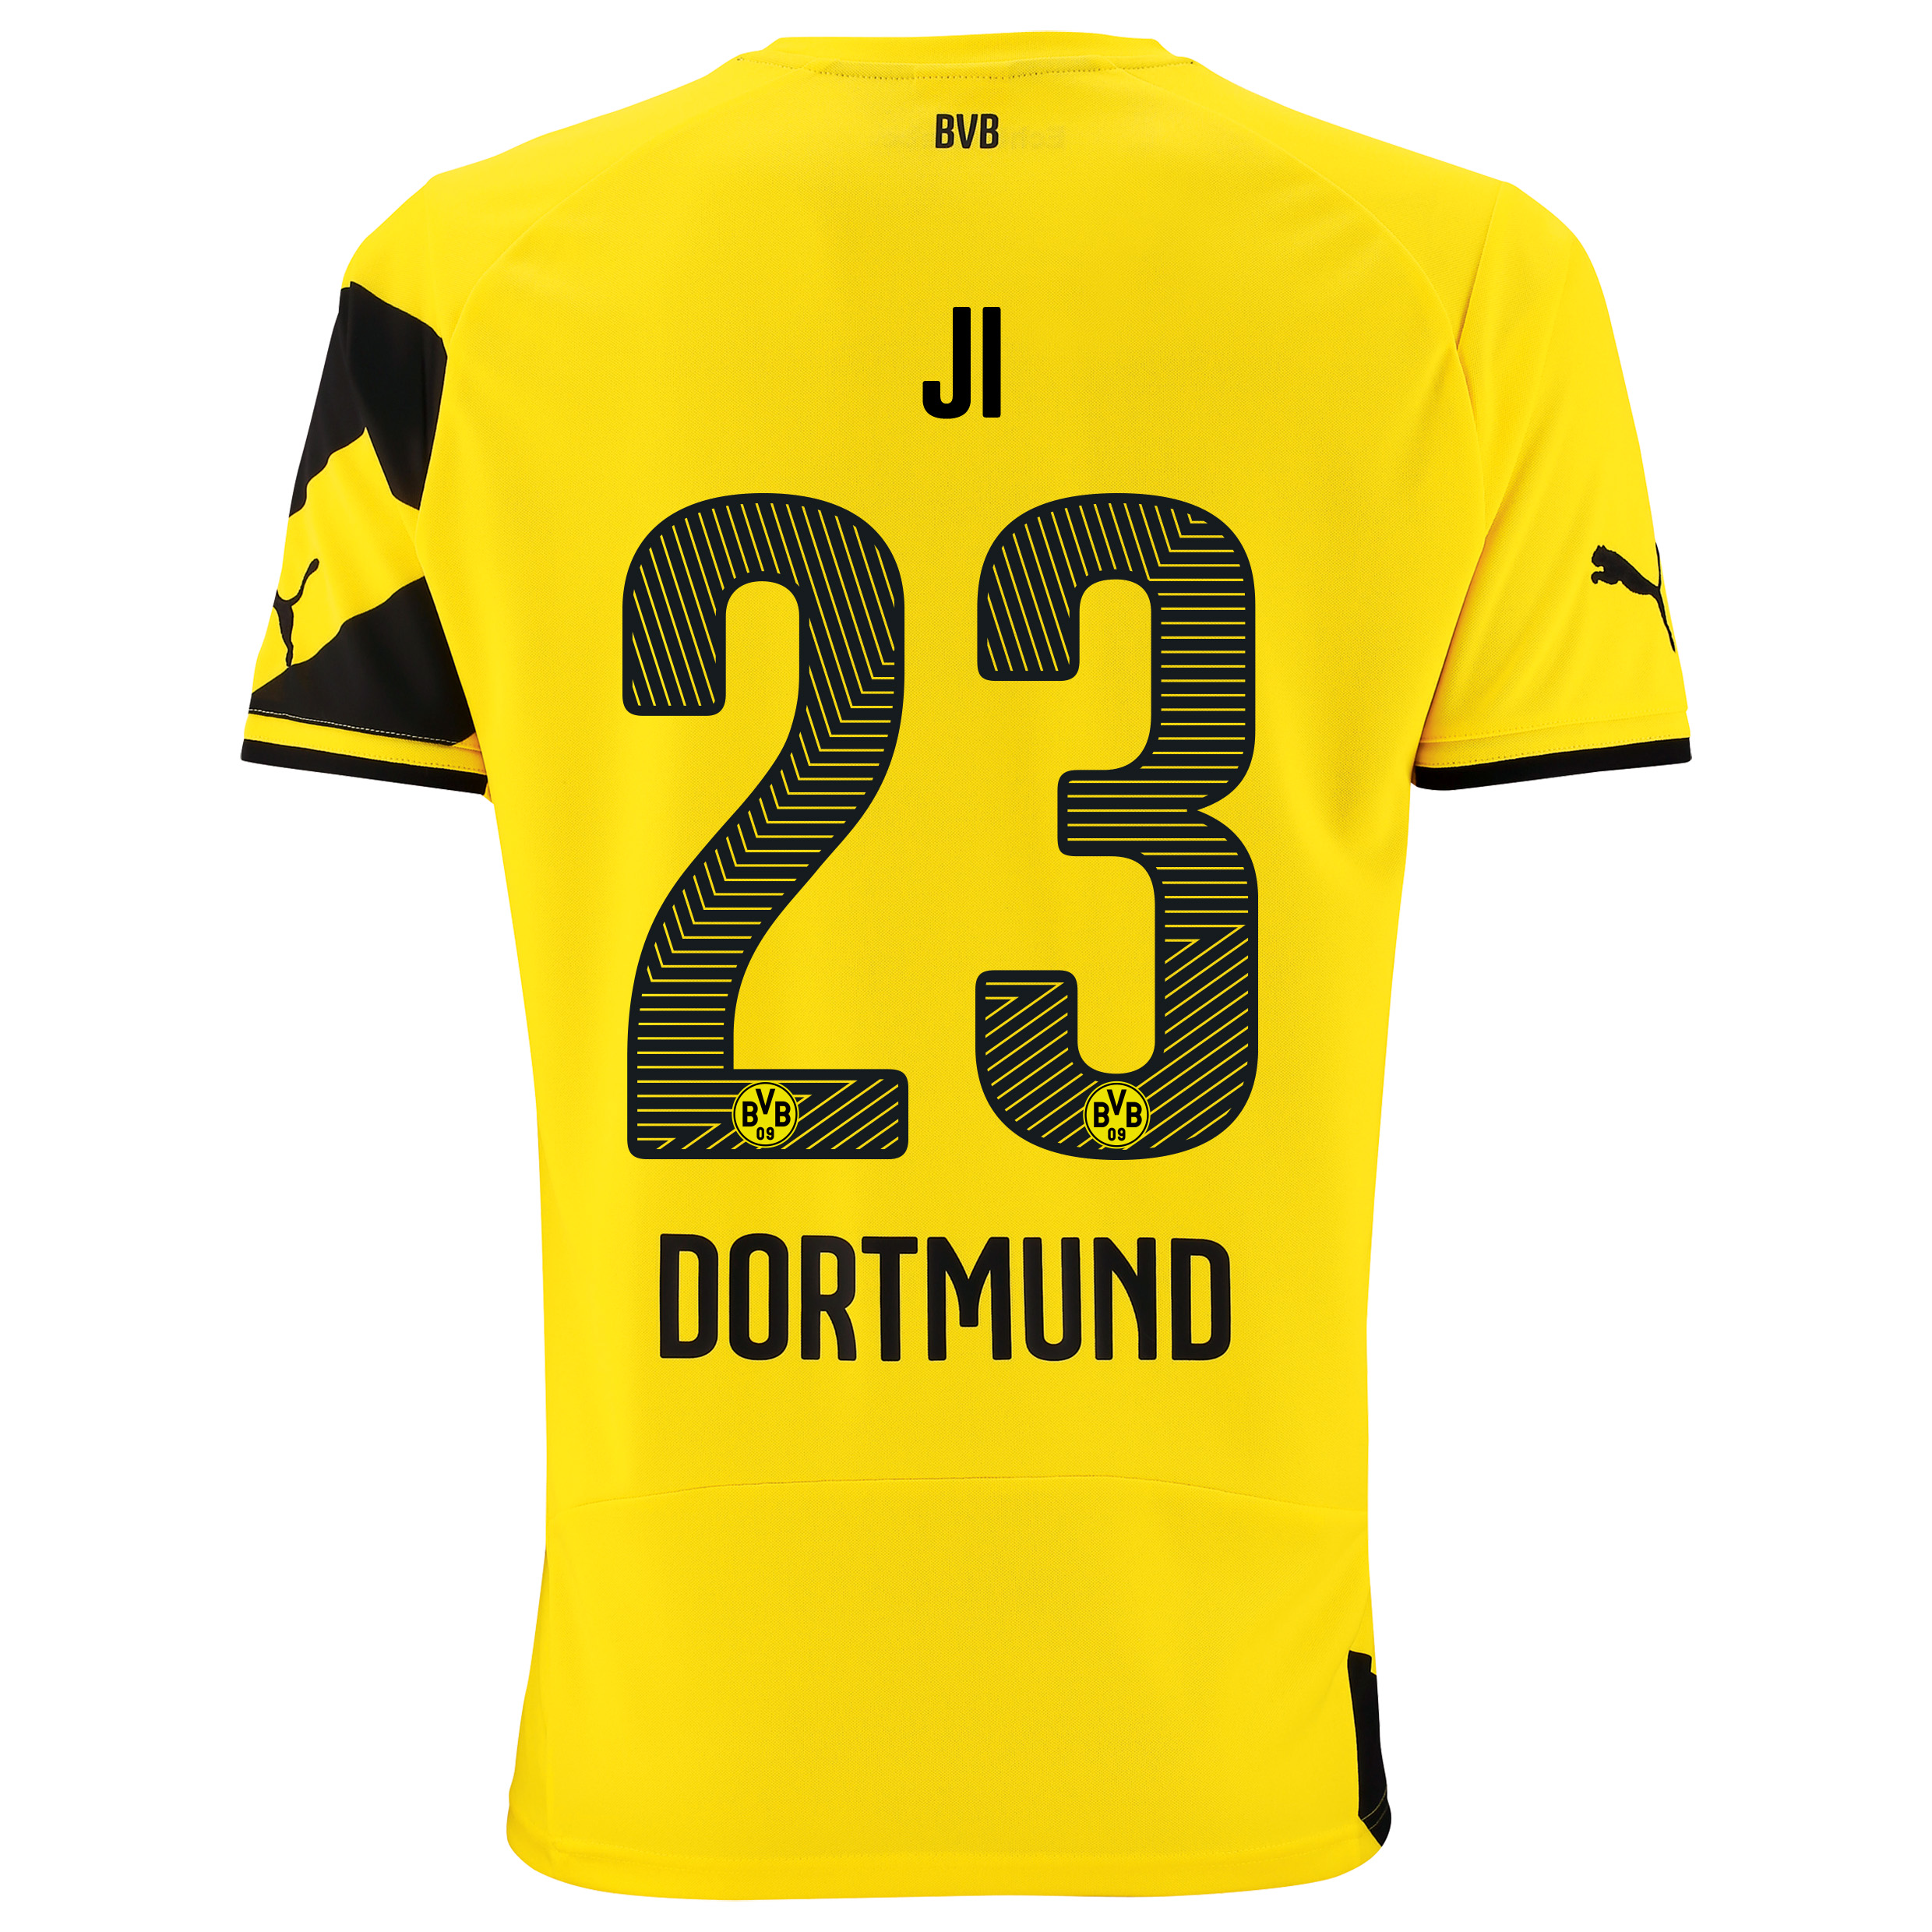 BVB Home Shirt 2014/15 with Dong-Won Ji 23 printing